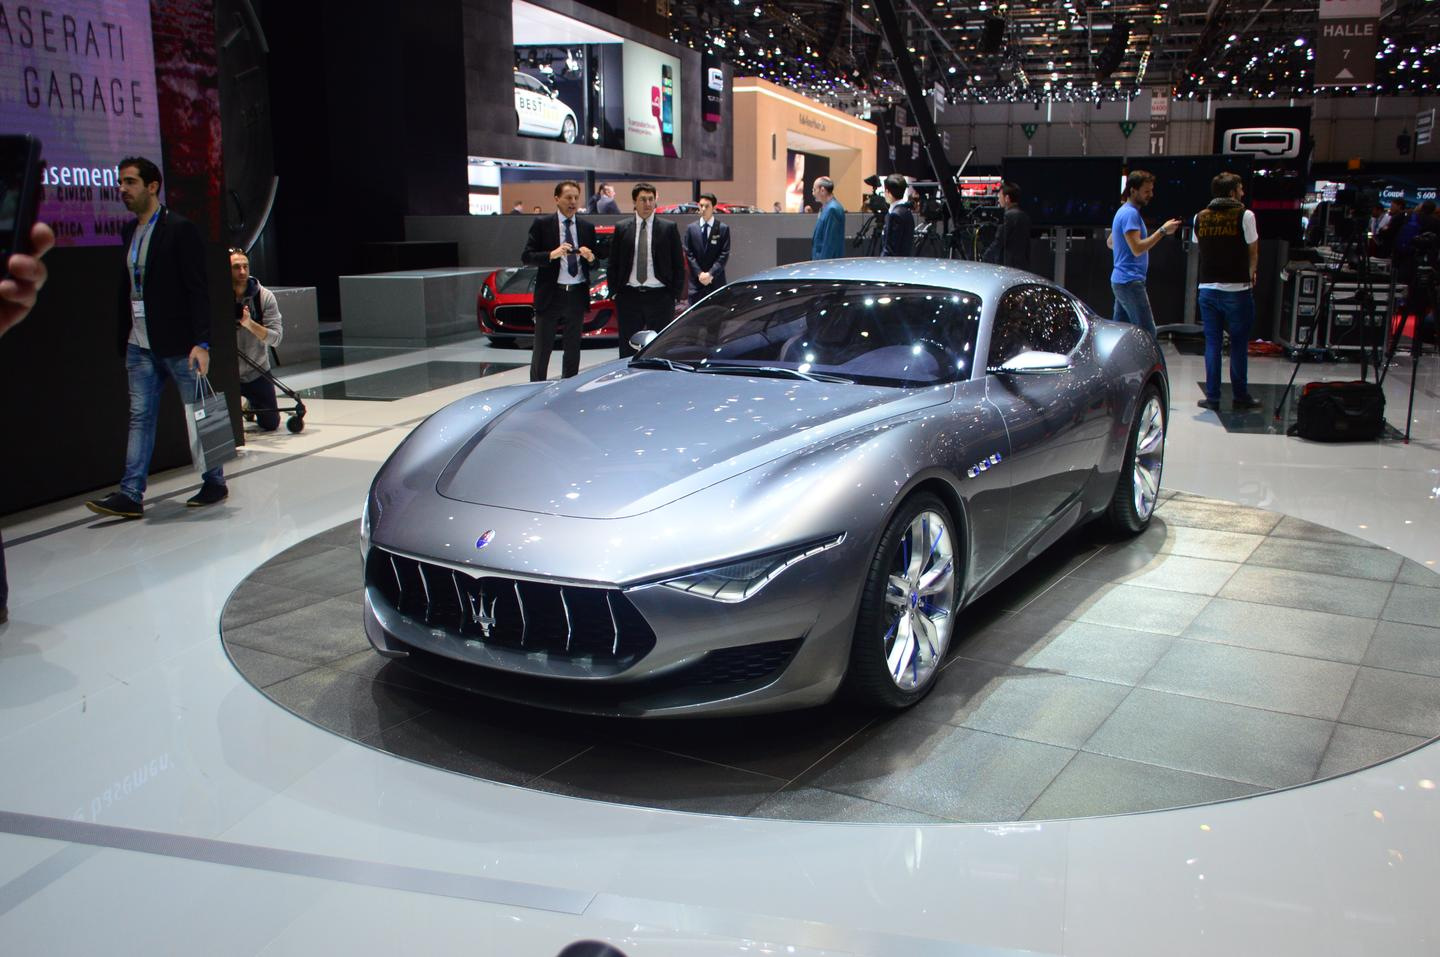 According to Maserati, the design influence for the Alfieri concept was the legendary A6 GCS-53 designed in 1954 by Pininfarina (Photo: CC Weiss/Gizmag)